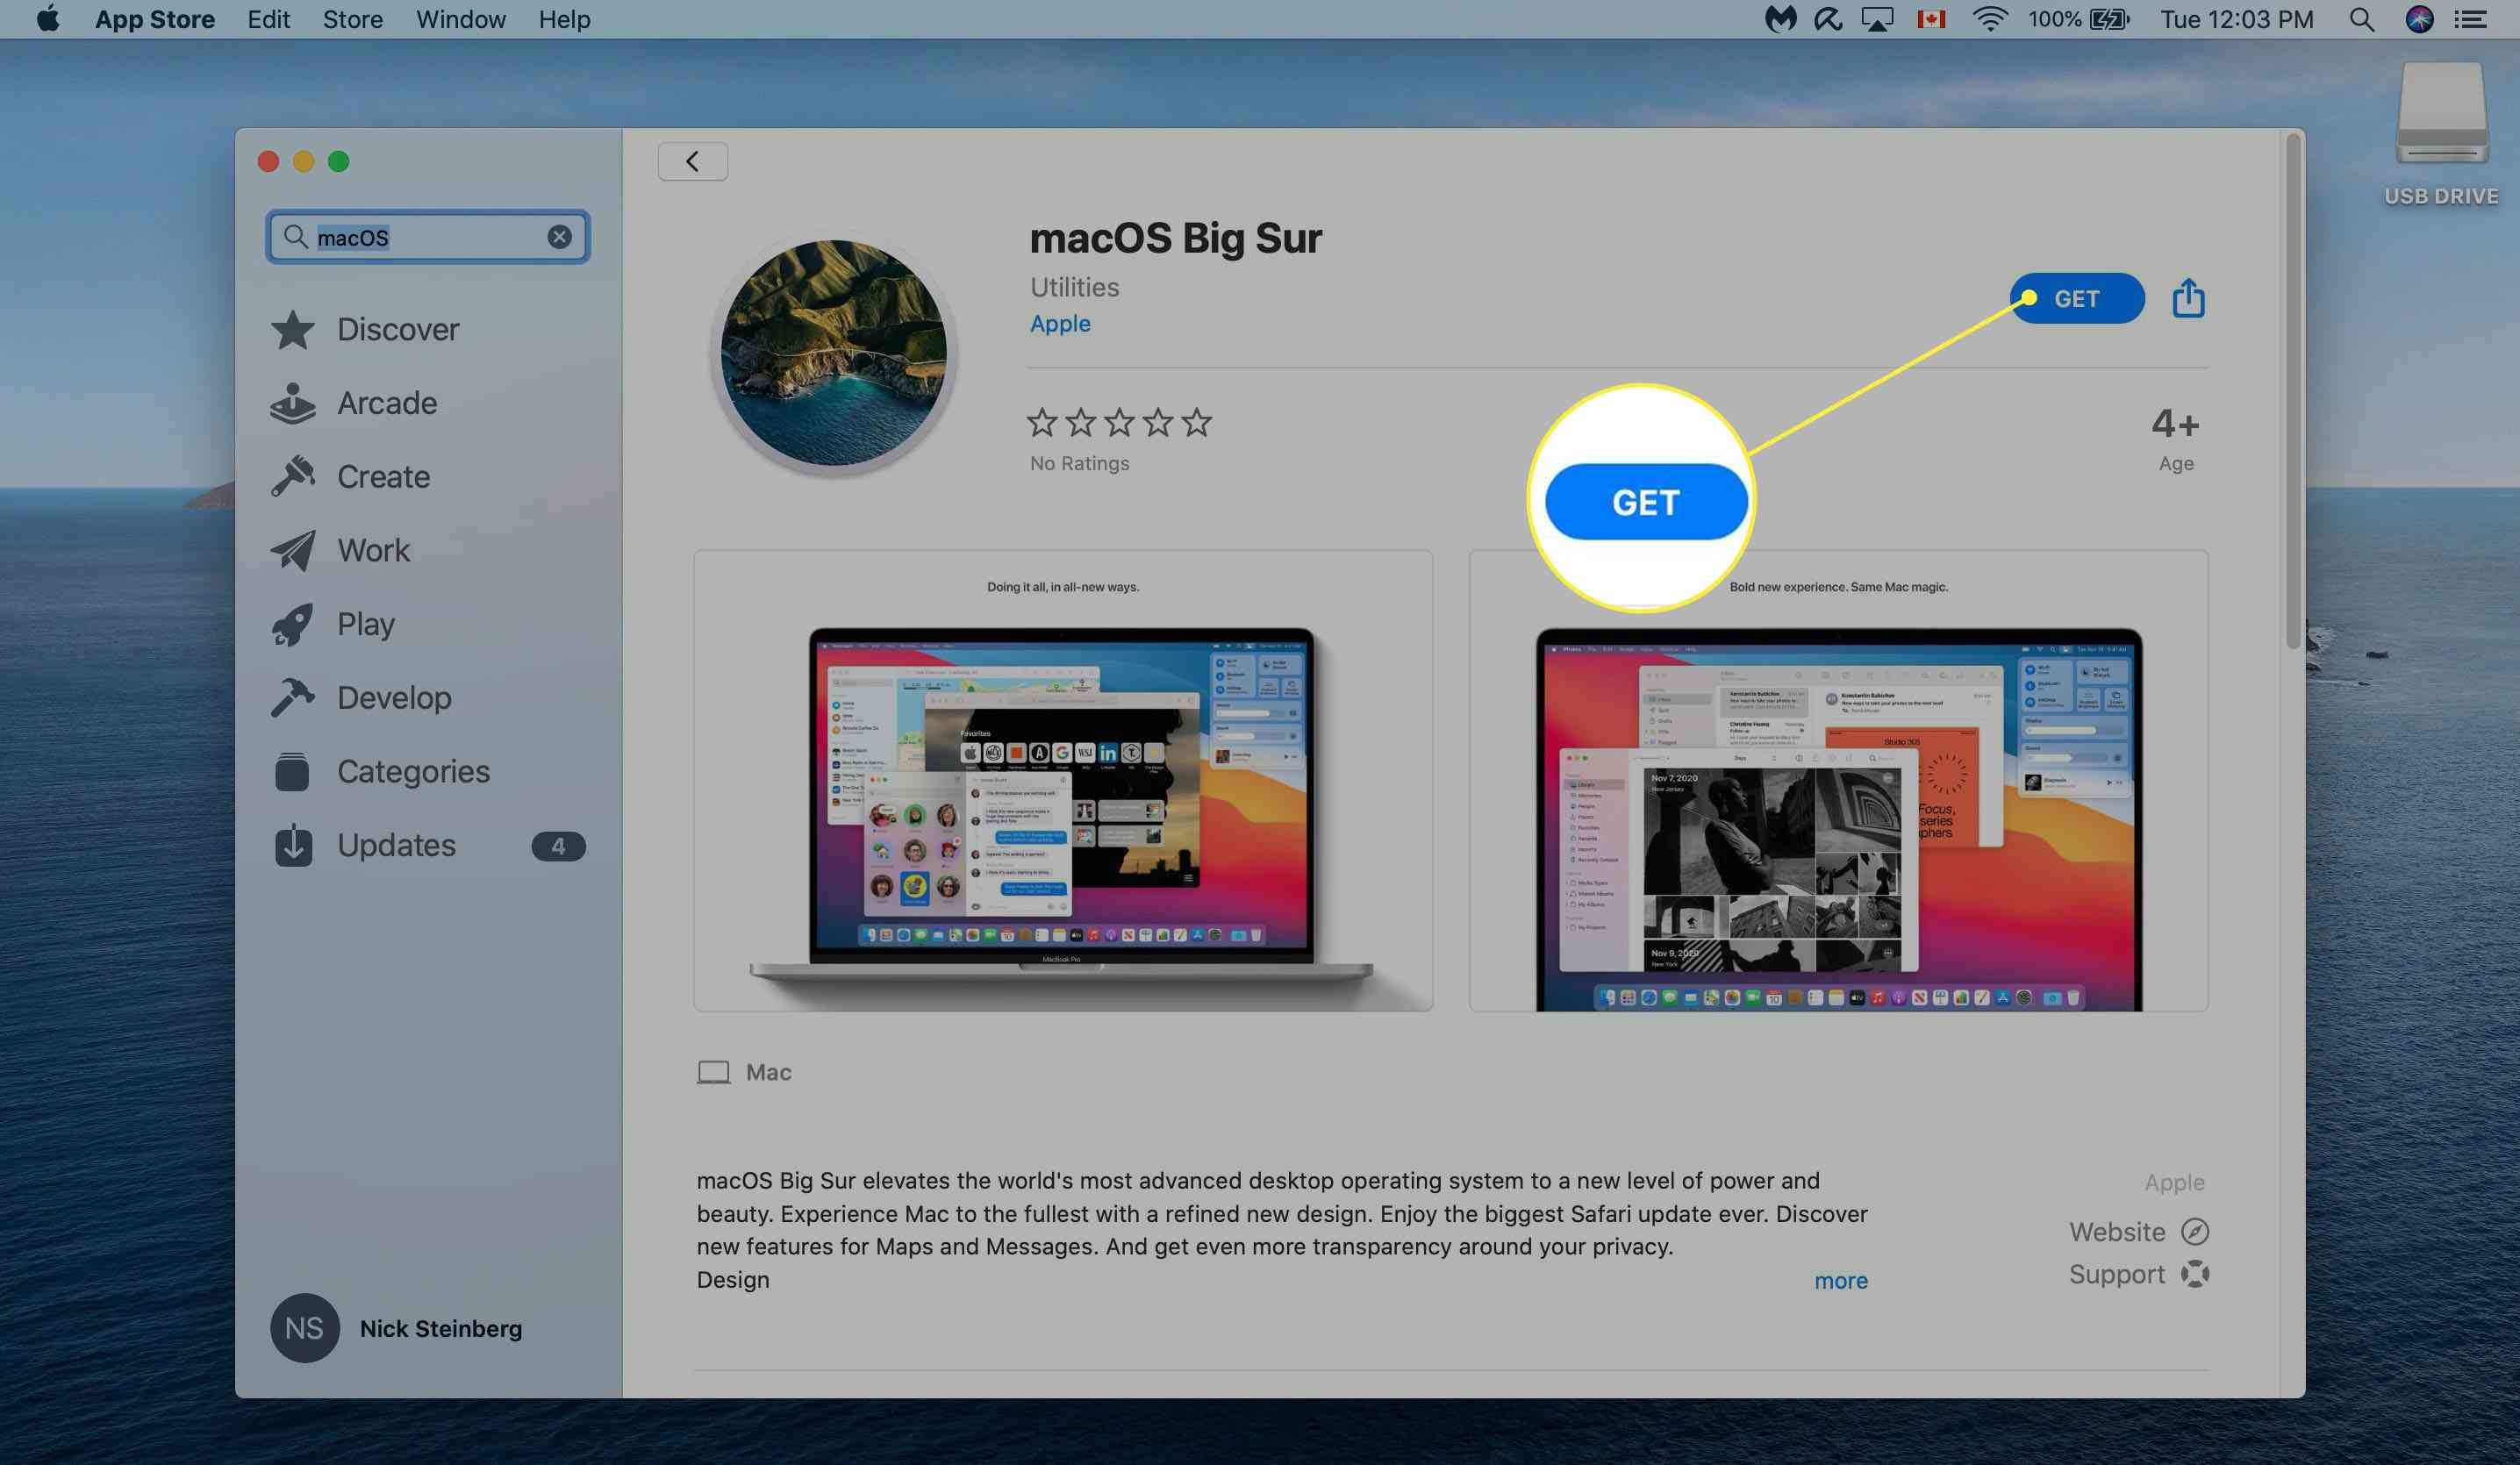 Downloading MacOS Big Sur from App Store.